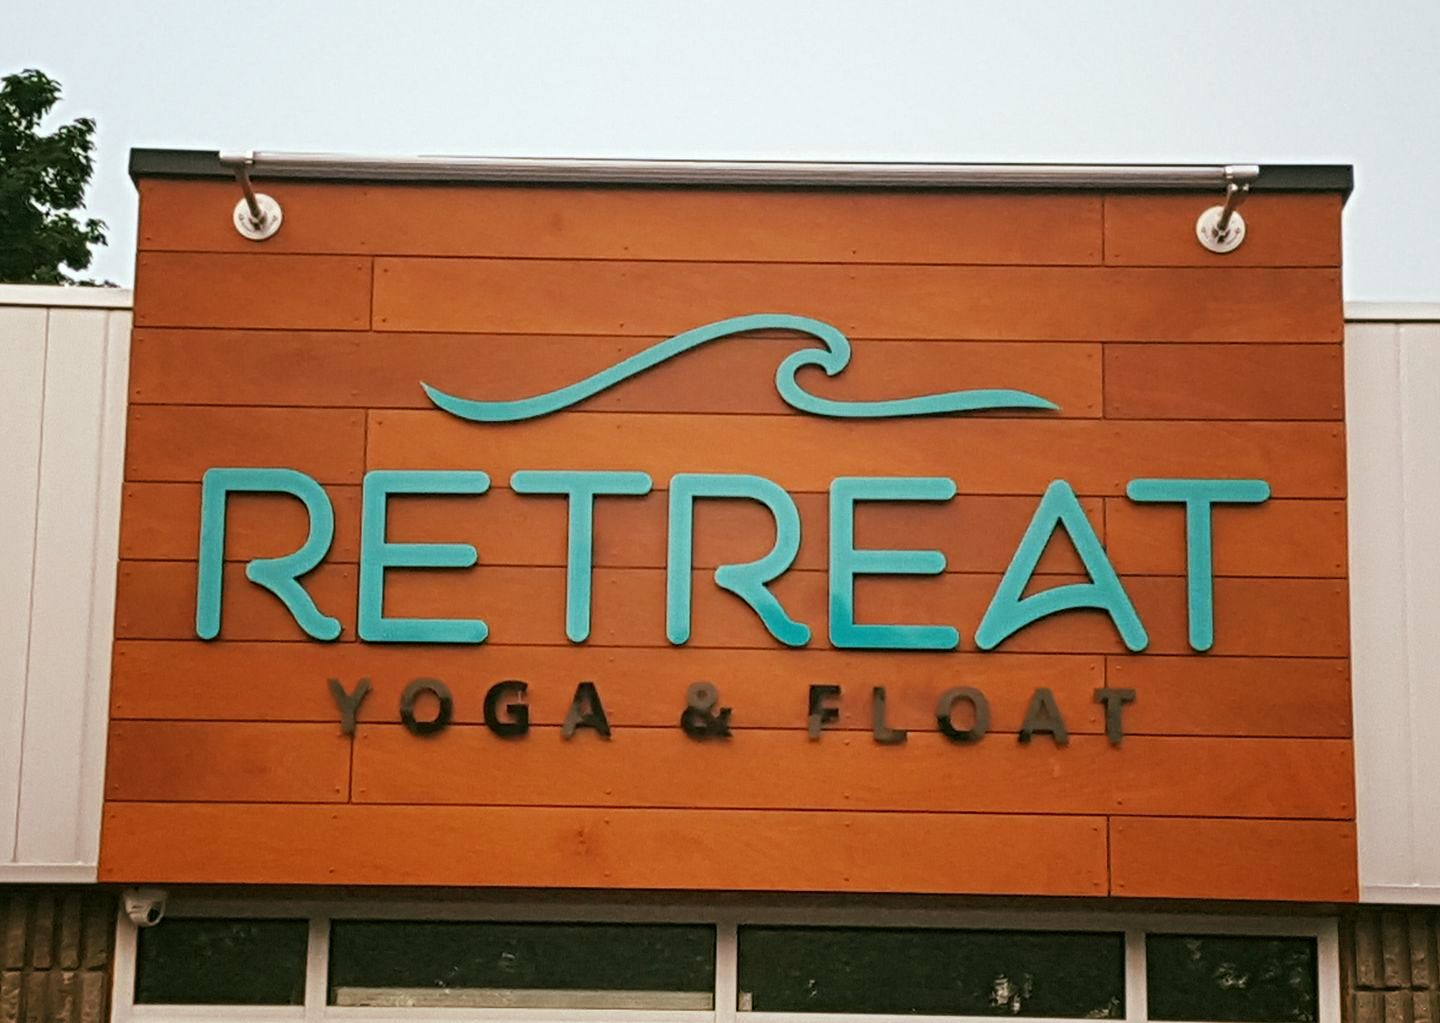 Retreat Yoga & Float